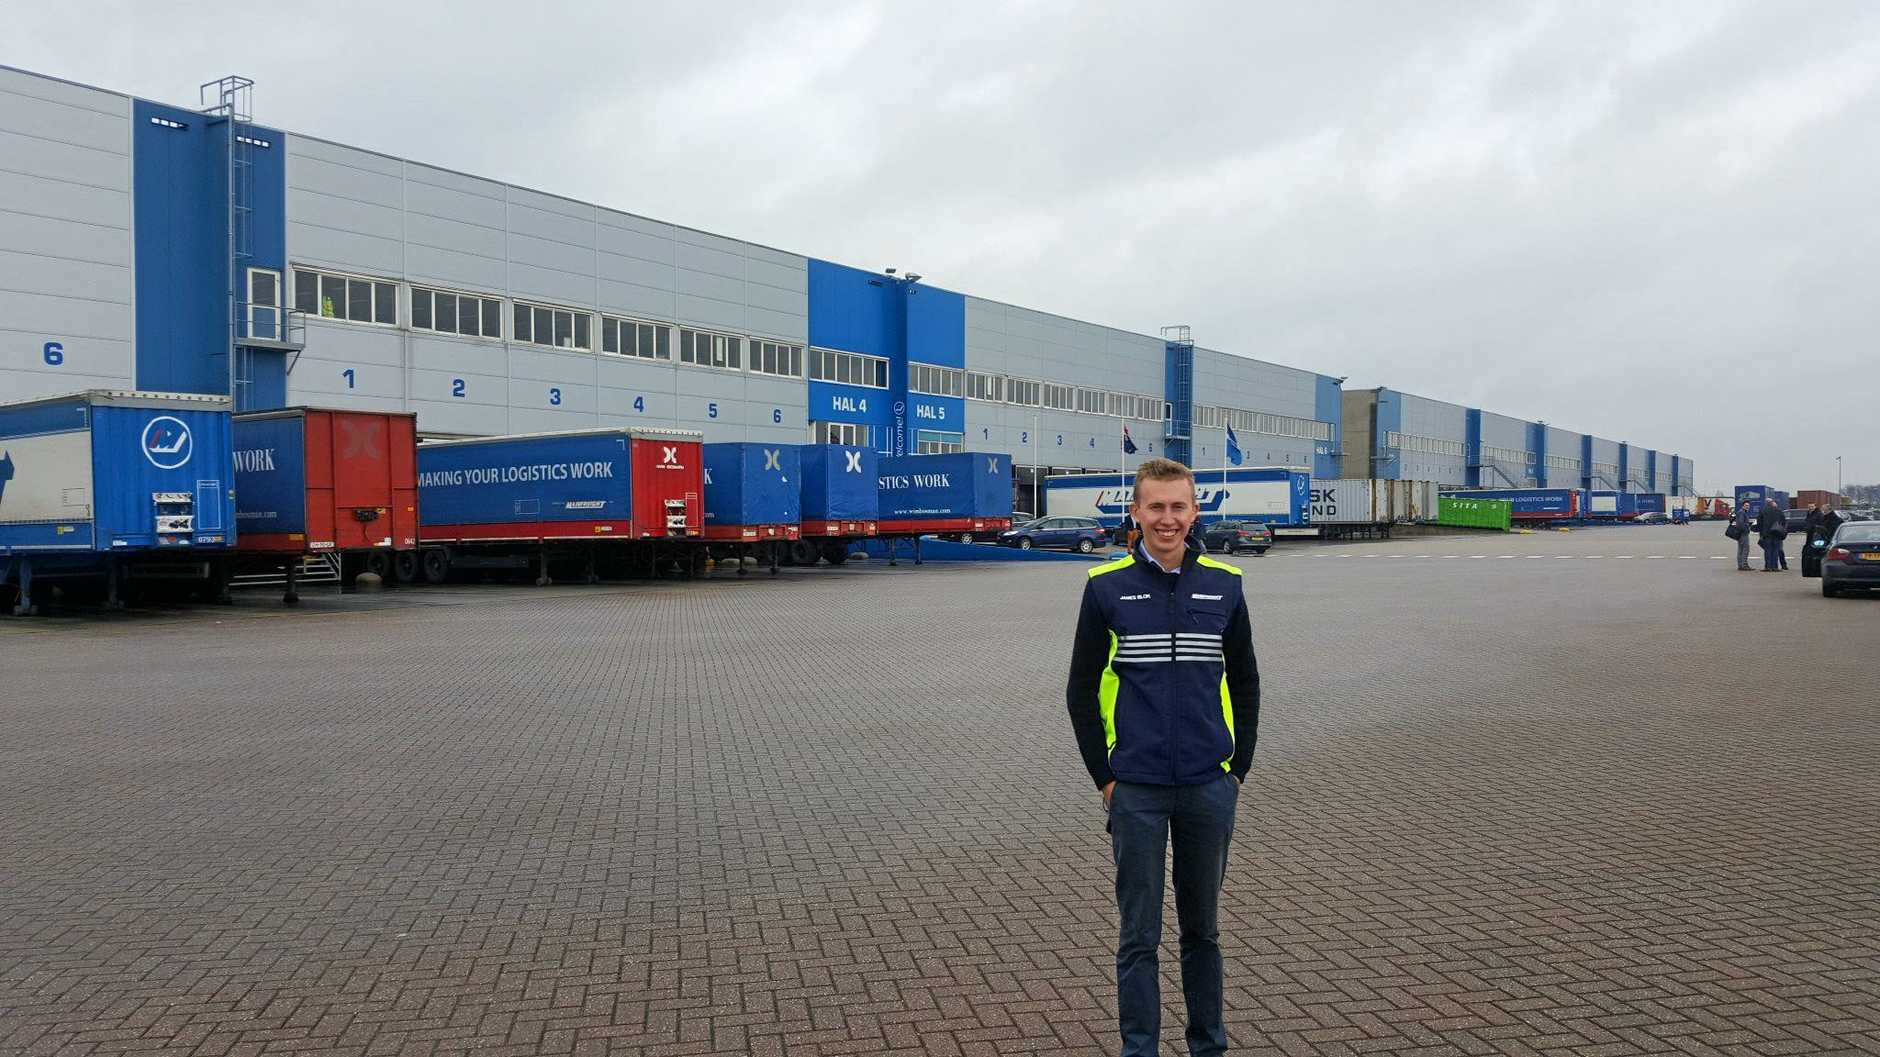 James Blok on his vision for the future of road transport